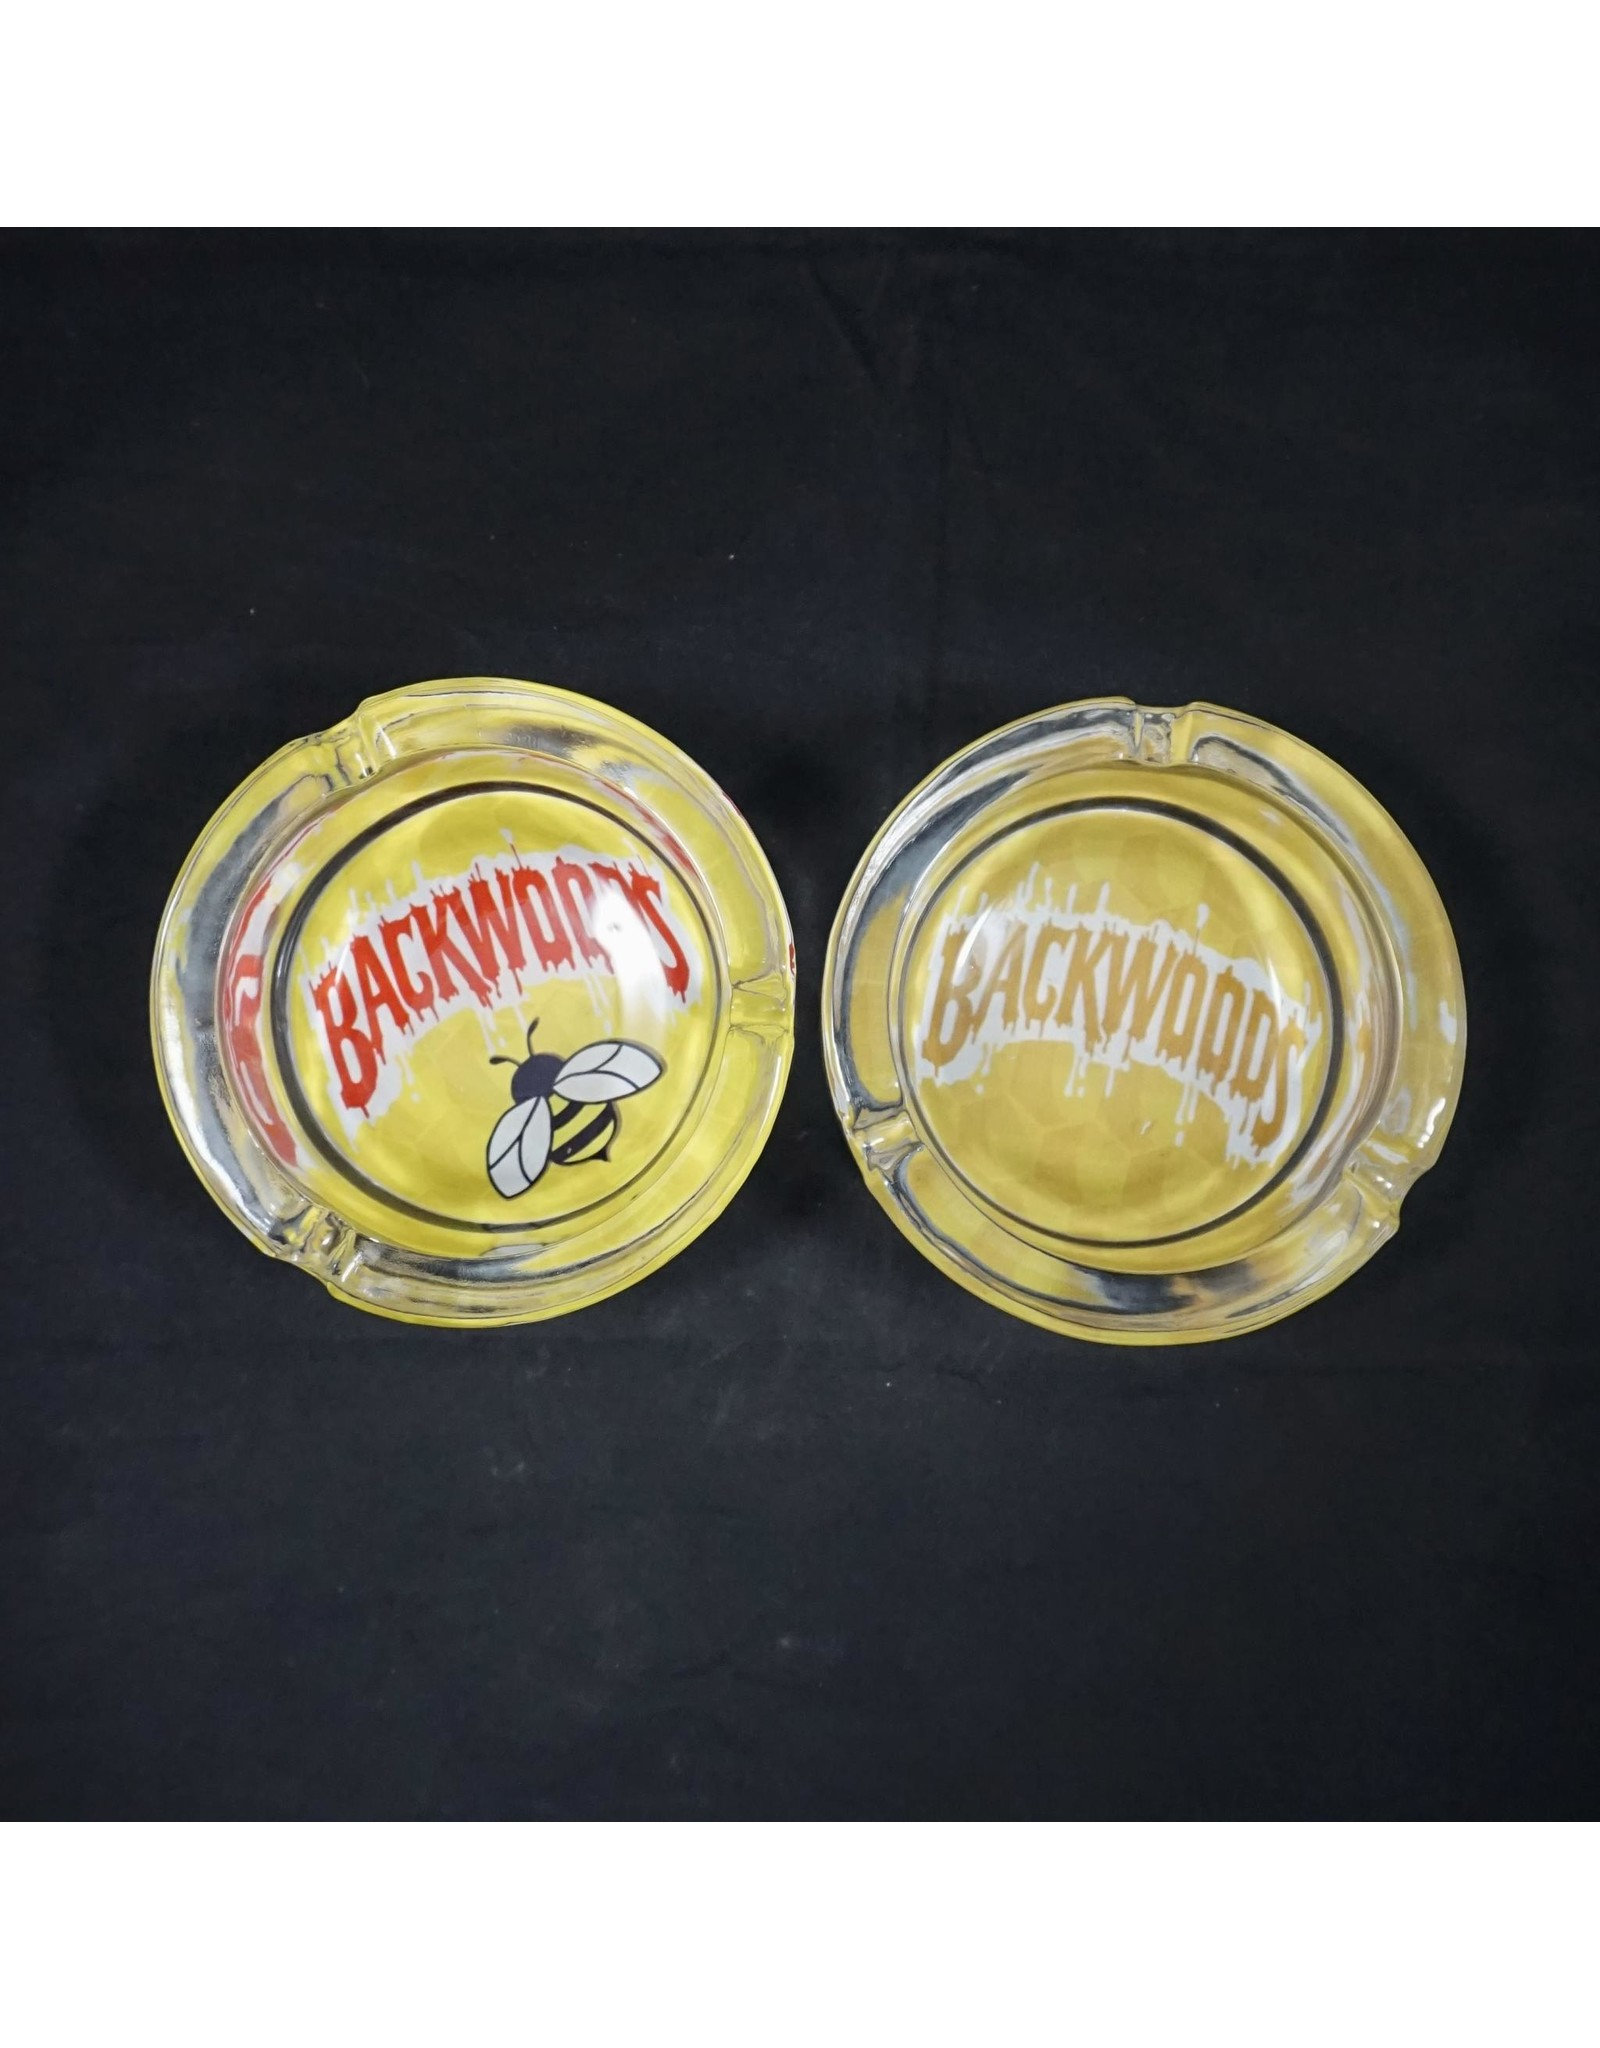 Backwoods Glass Ashtray - Assorted Colors